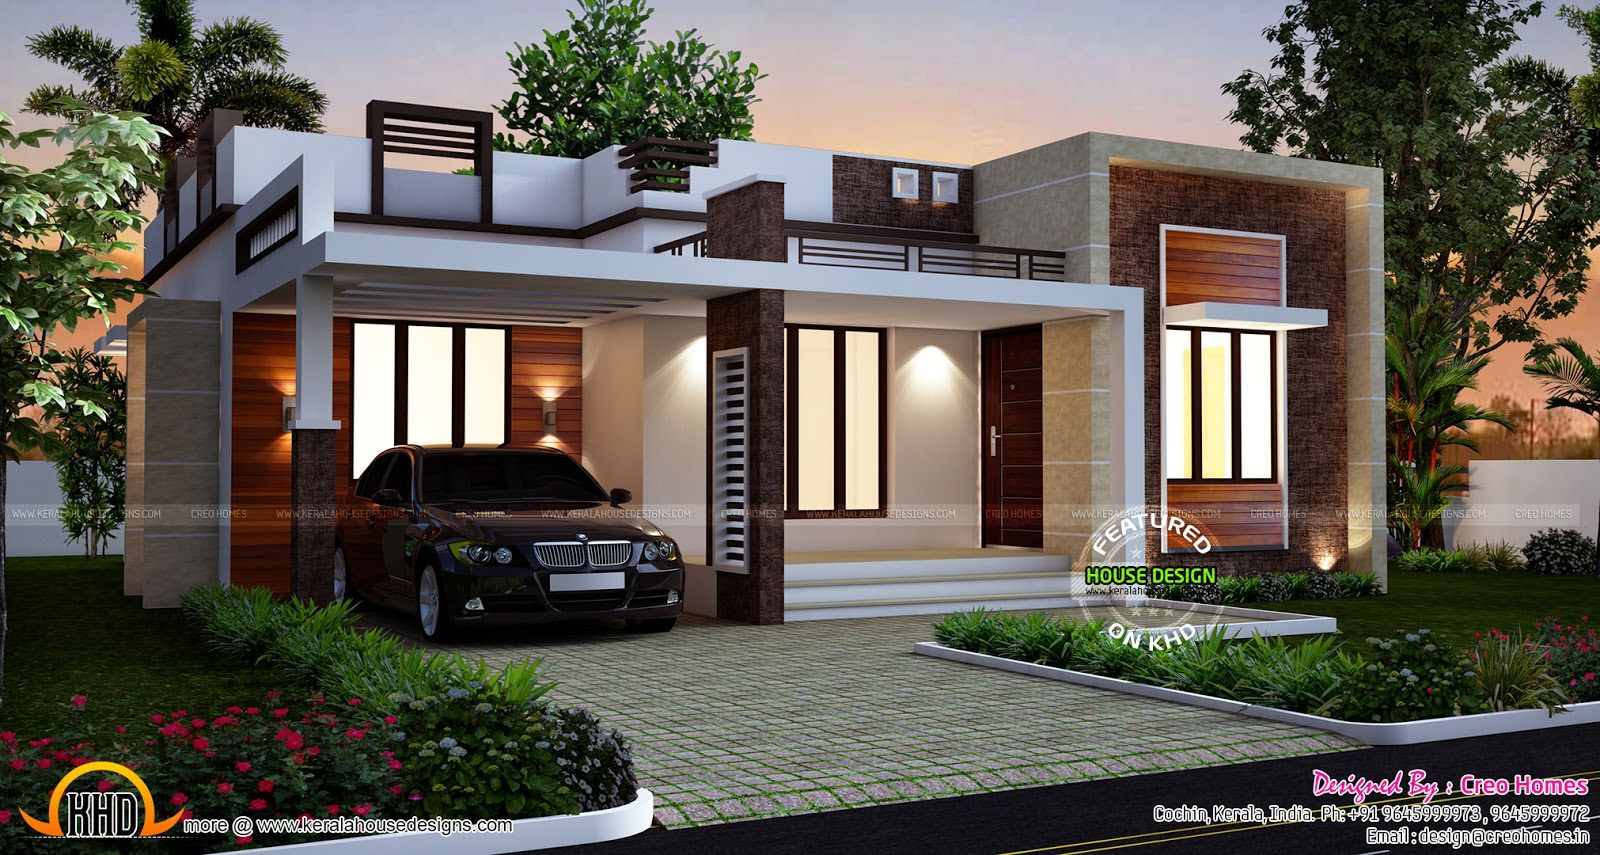 Single storey home flat roof future vertical expansion 6 social side - Designs Homes Design Single Story Flat Roof House Plans